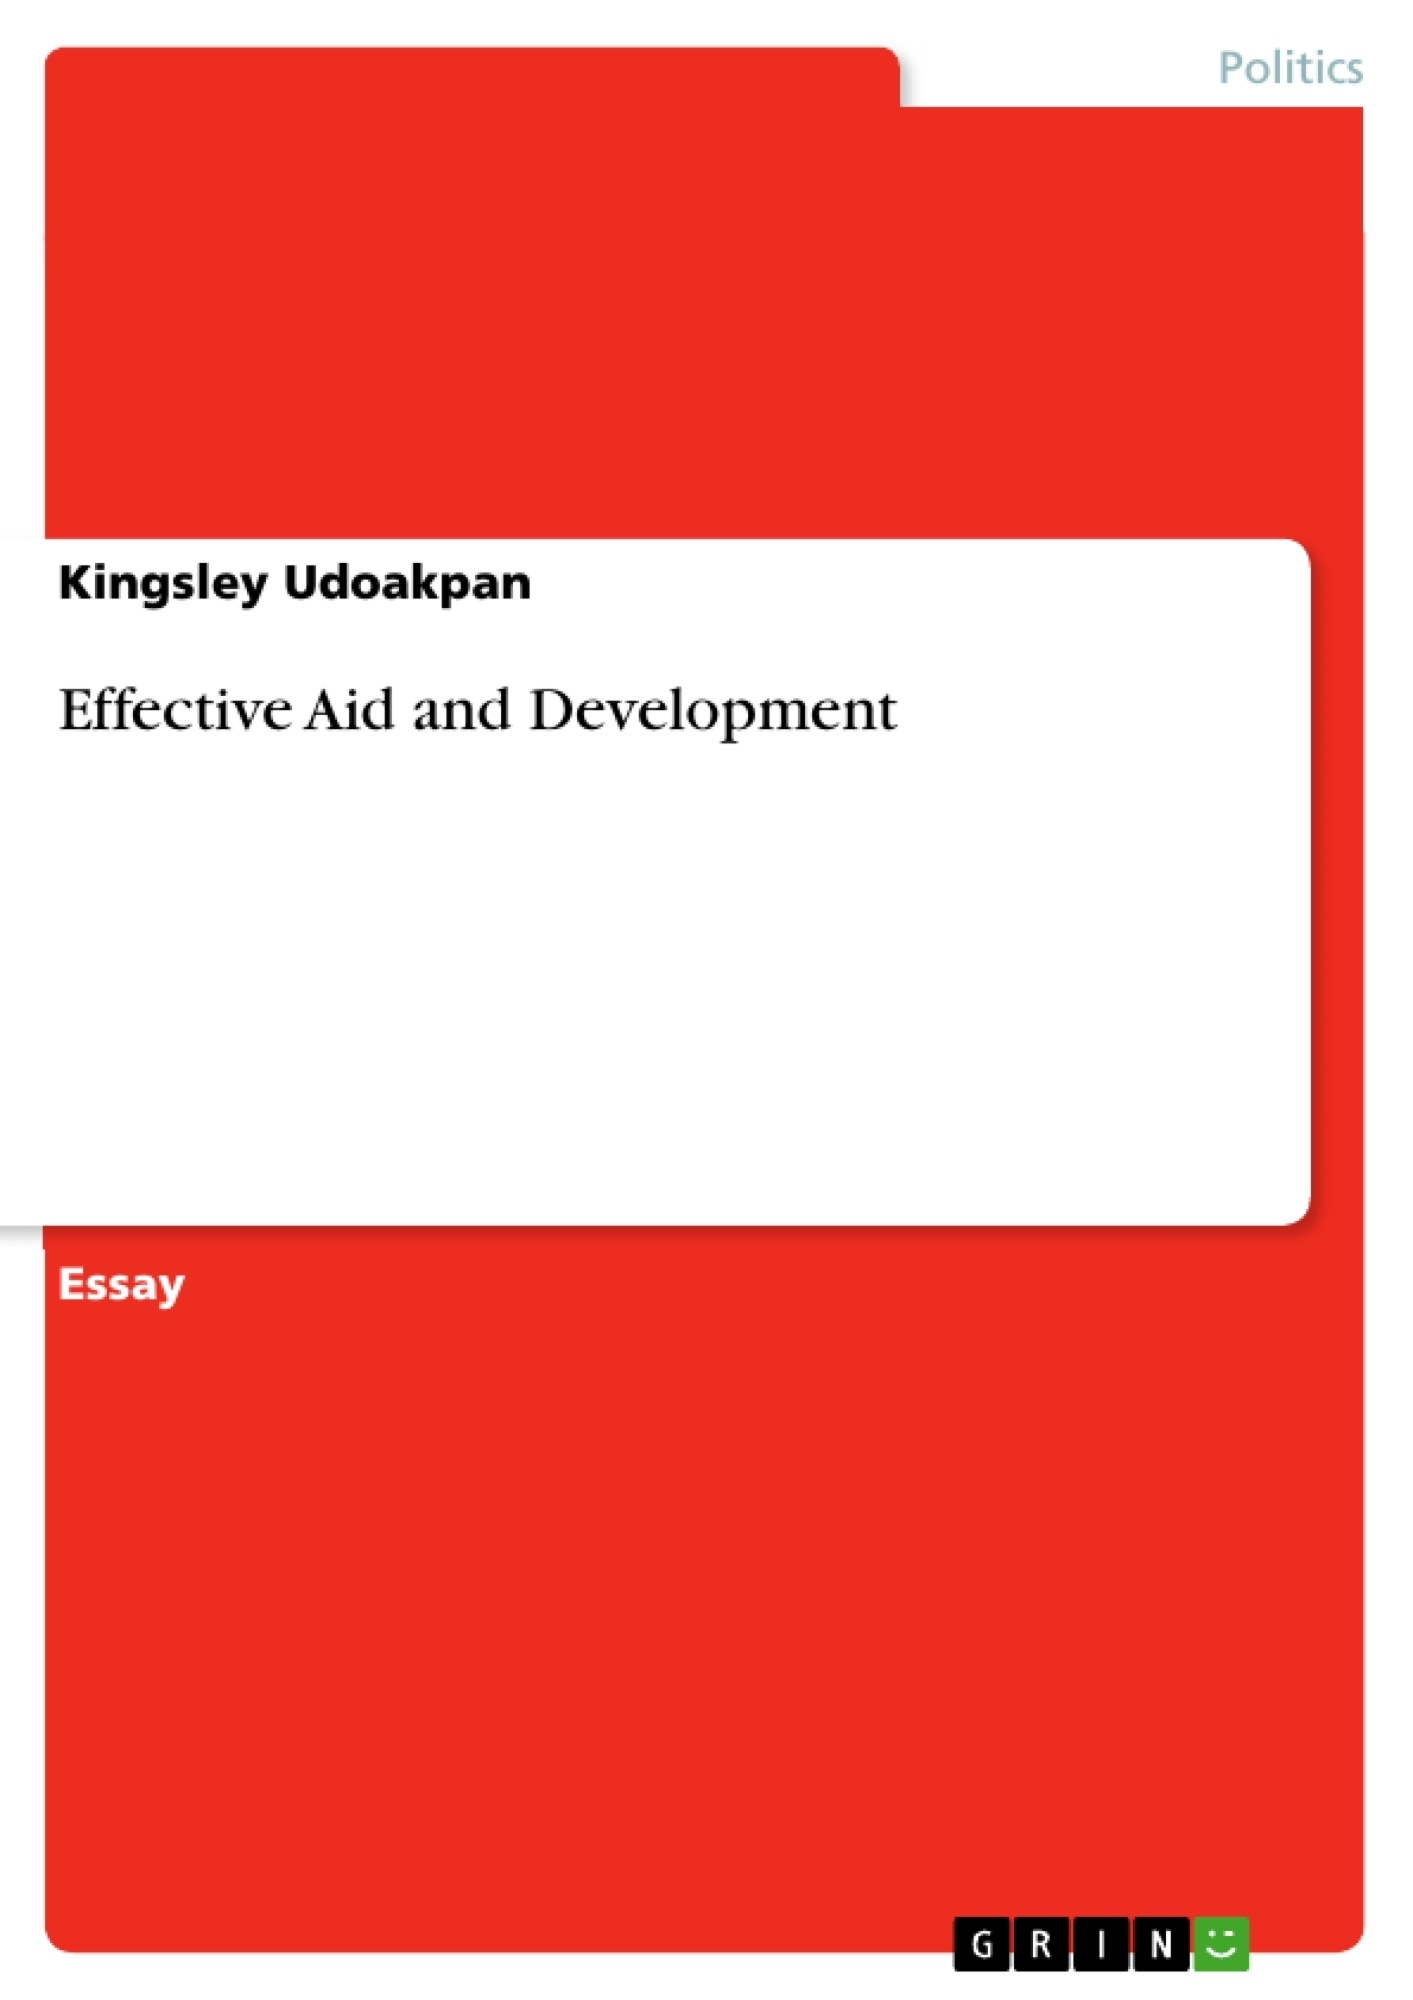 Title: Effective Aid and Development